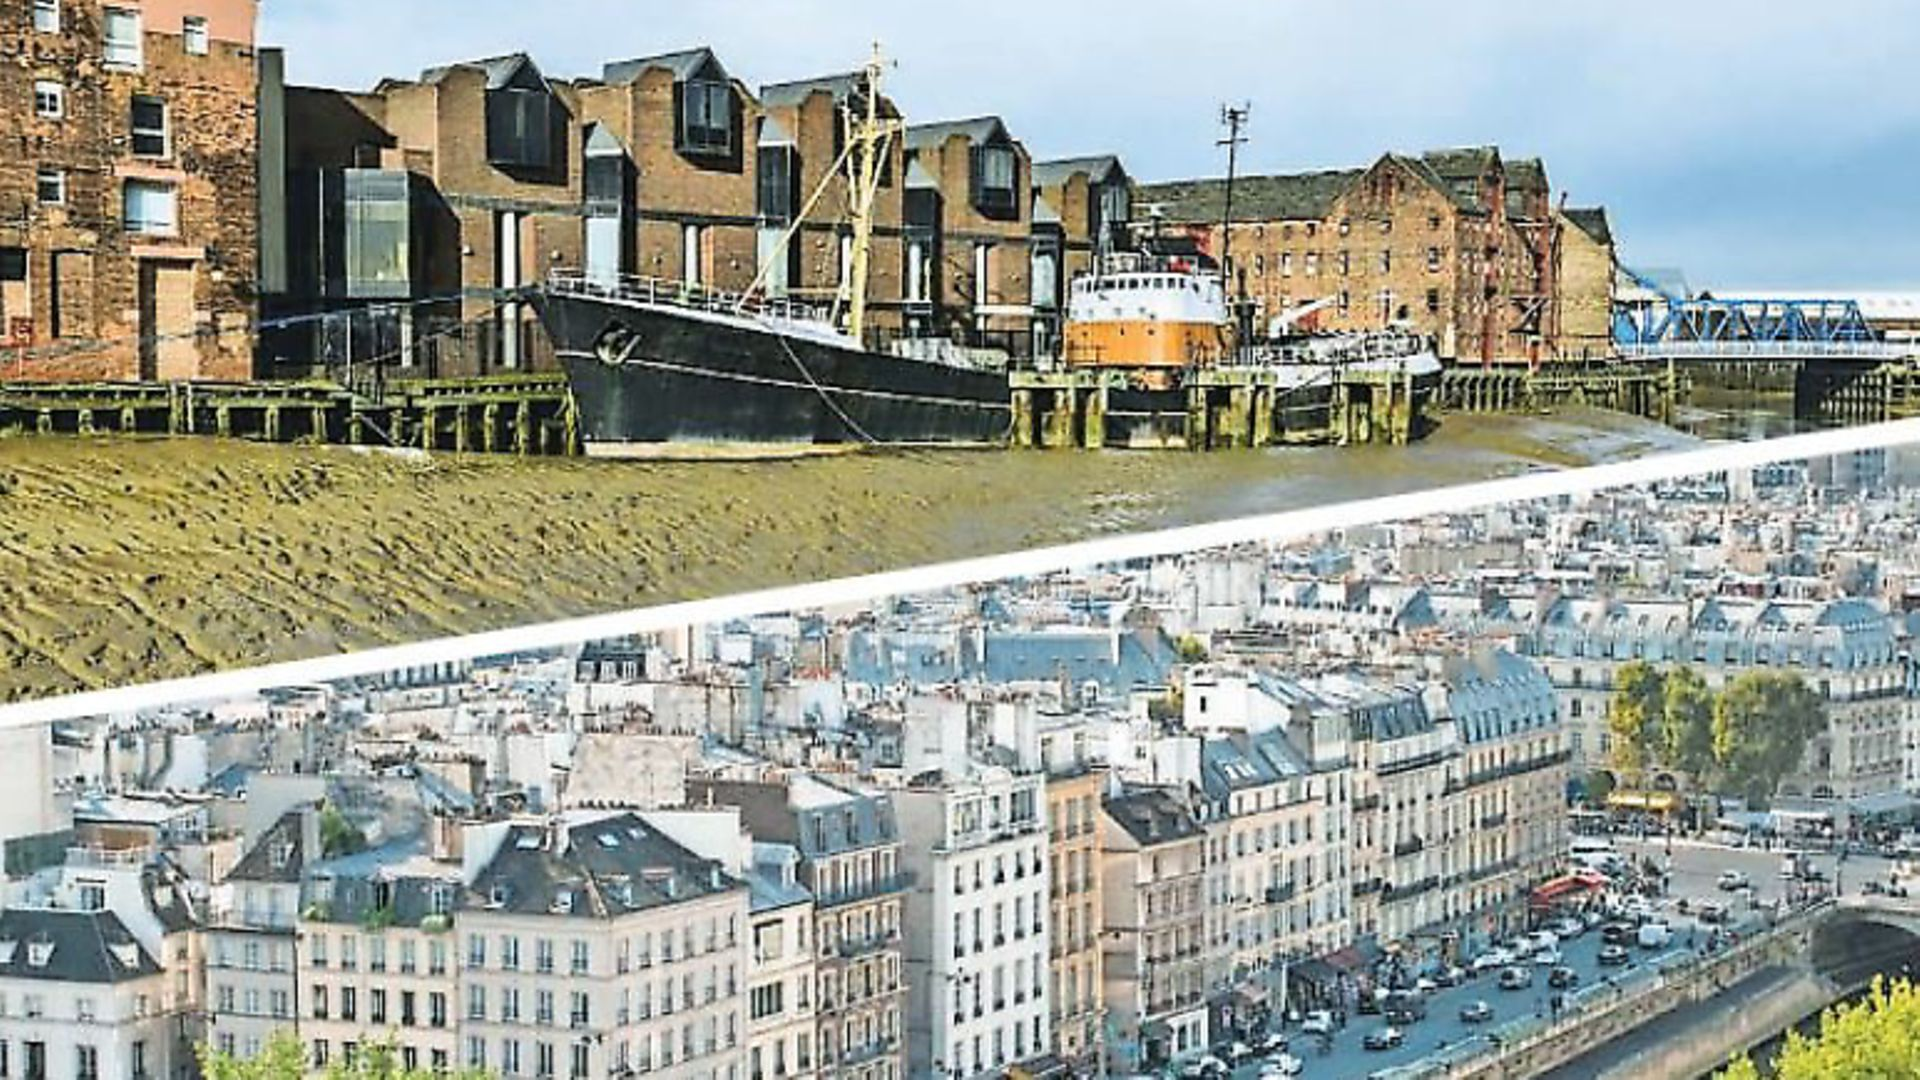 Top, Hulls riverside. Bottom, a view of Paris from Notre-Dame roof - Credit: Archant